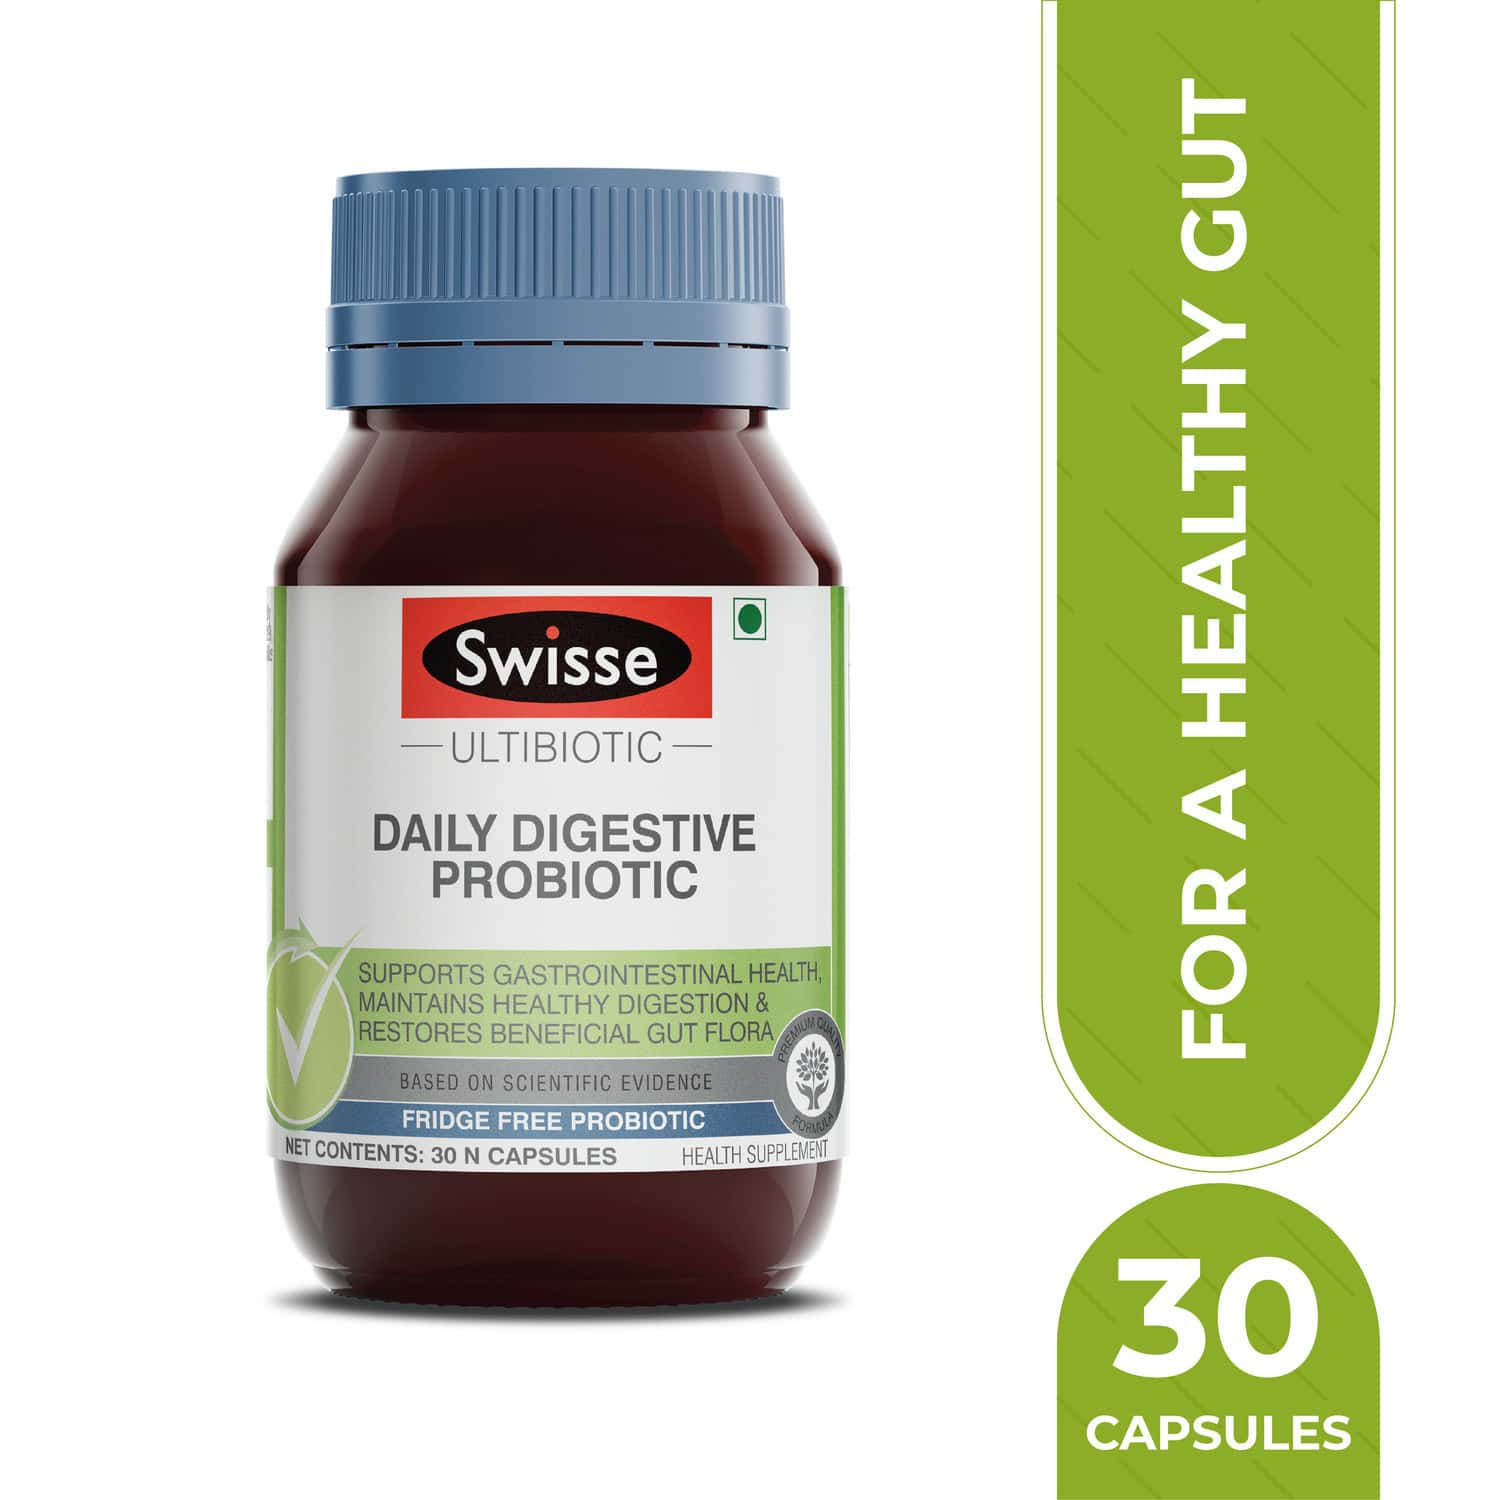 Swisse Ultibiotic Probiotic Supplement For Immunity And Digestive Health Gut Health - 30 Capsules